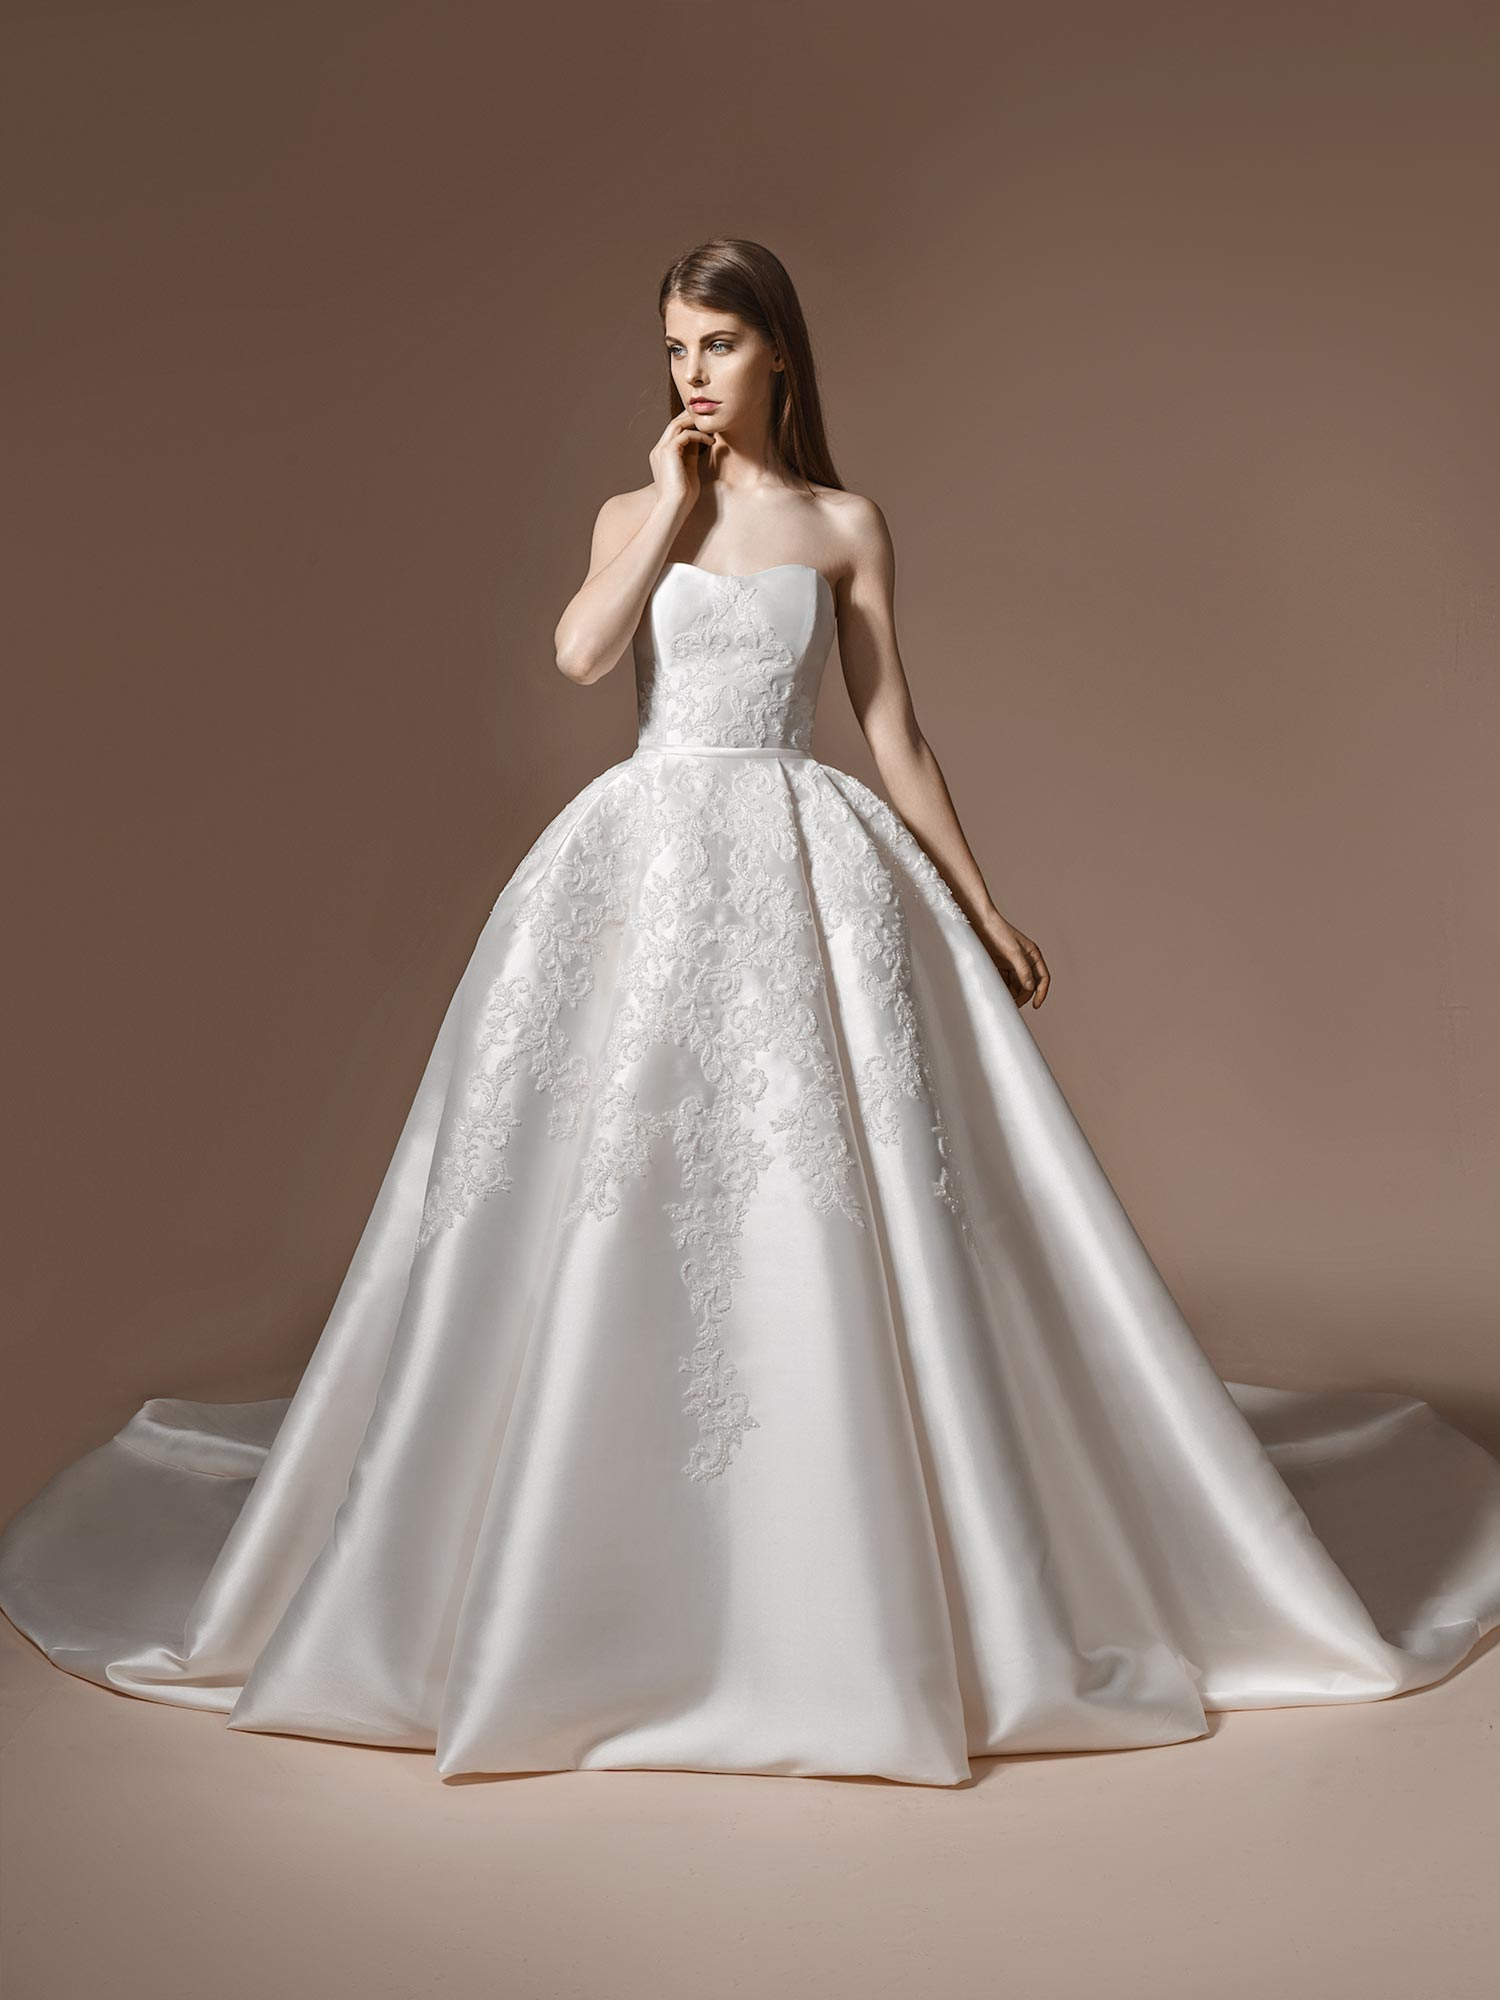 Papilio Sweetheart neckline ball gown wedding dress with embroidery